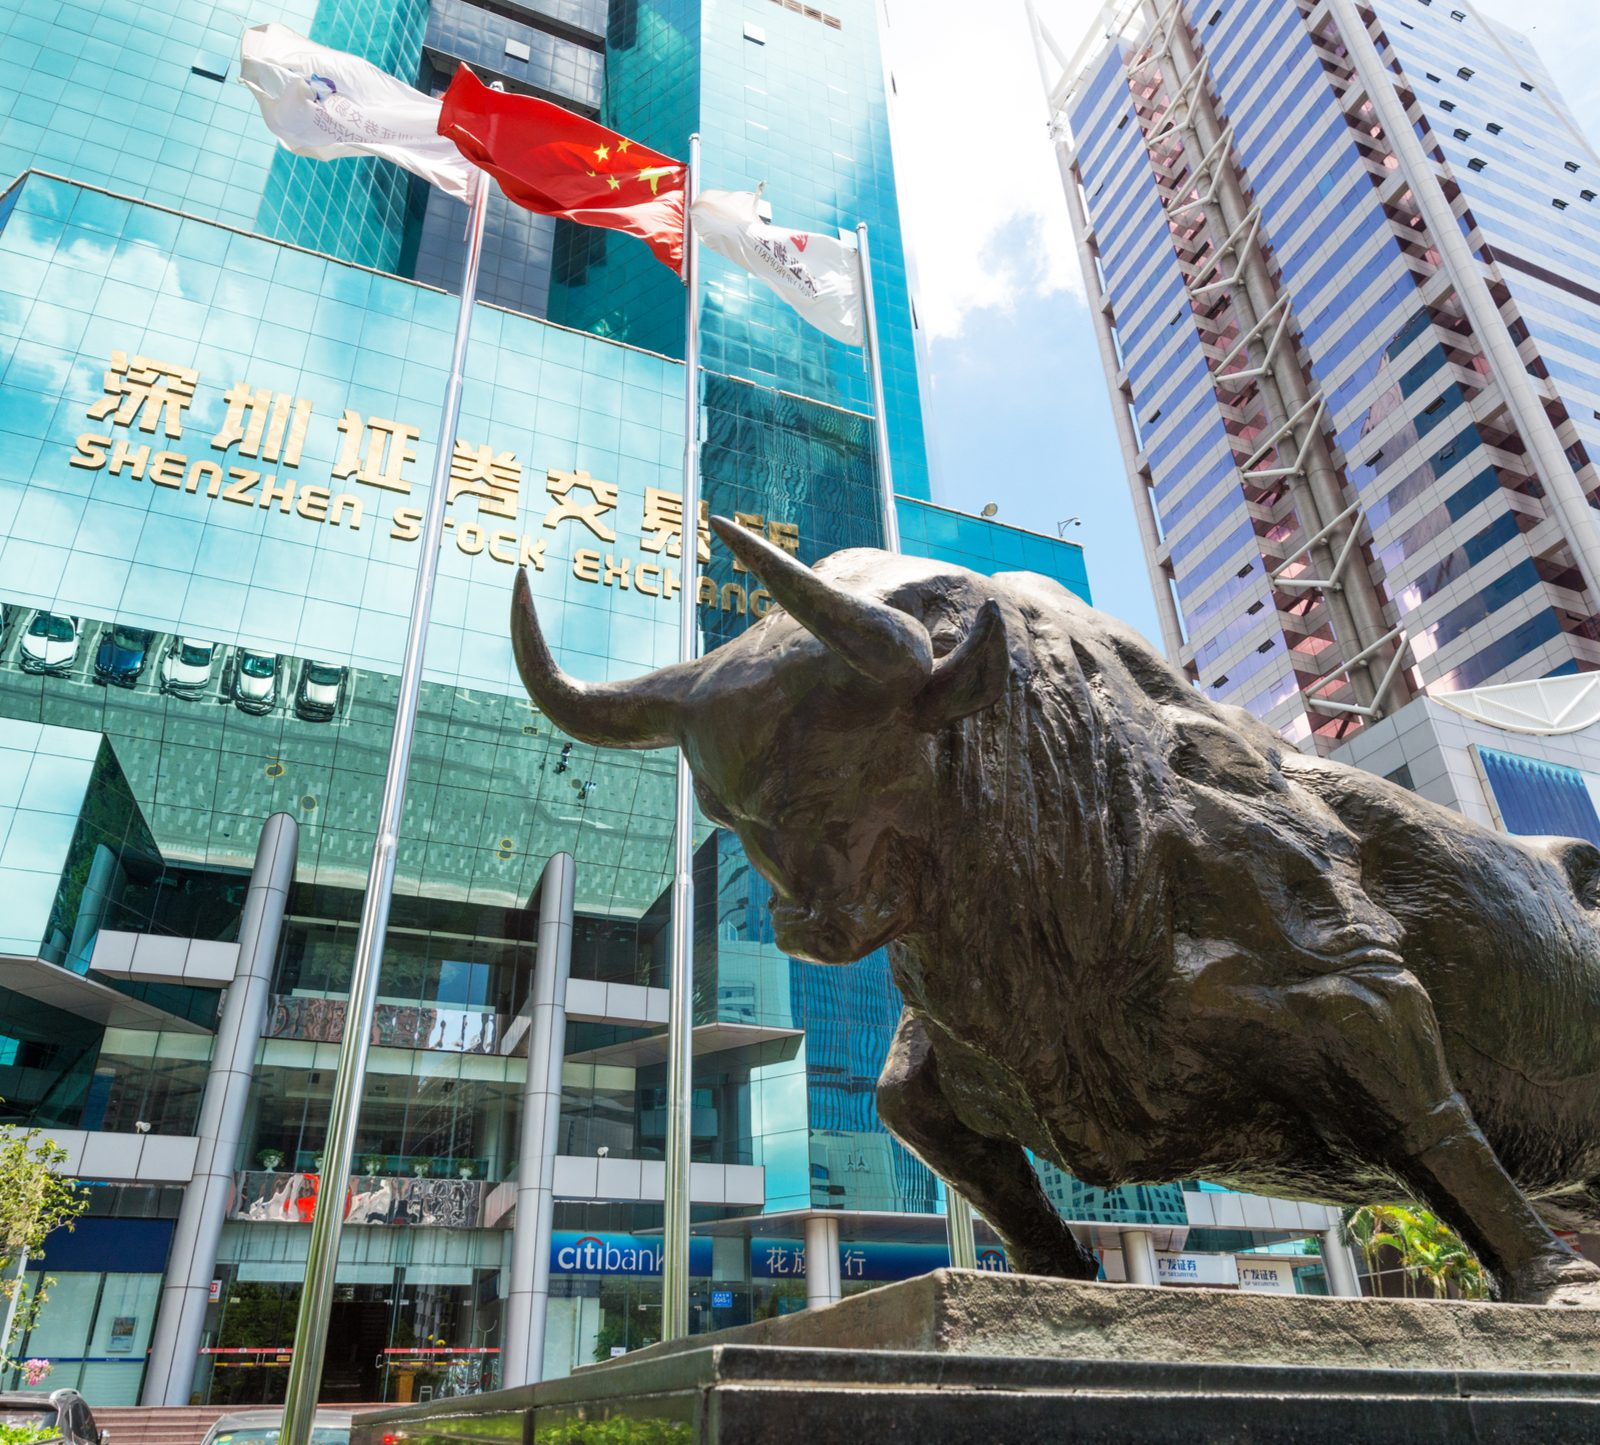 Chinese Stock Exchanges Investigate Blockchain Companies, Half Fail to Demonstrate DLT Applications